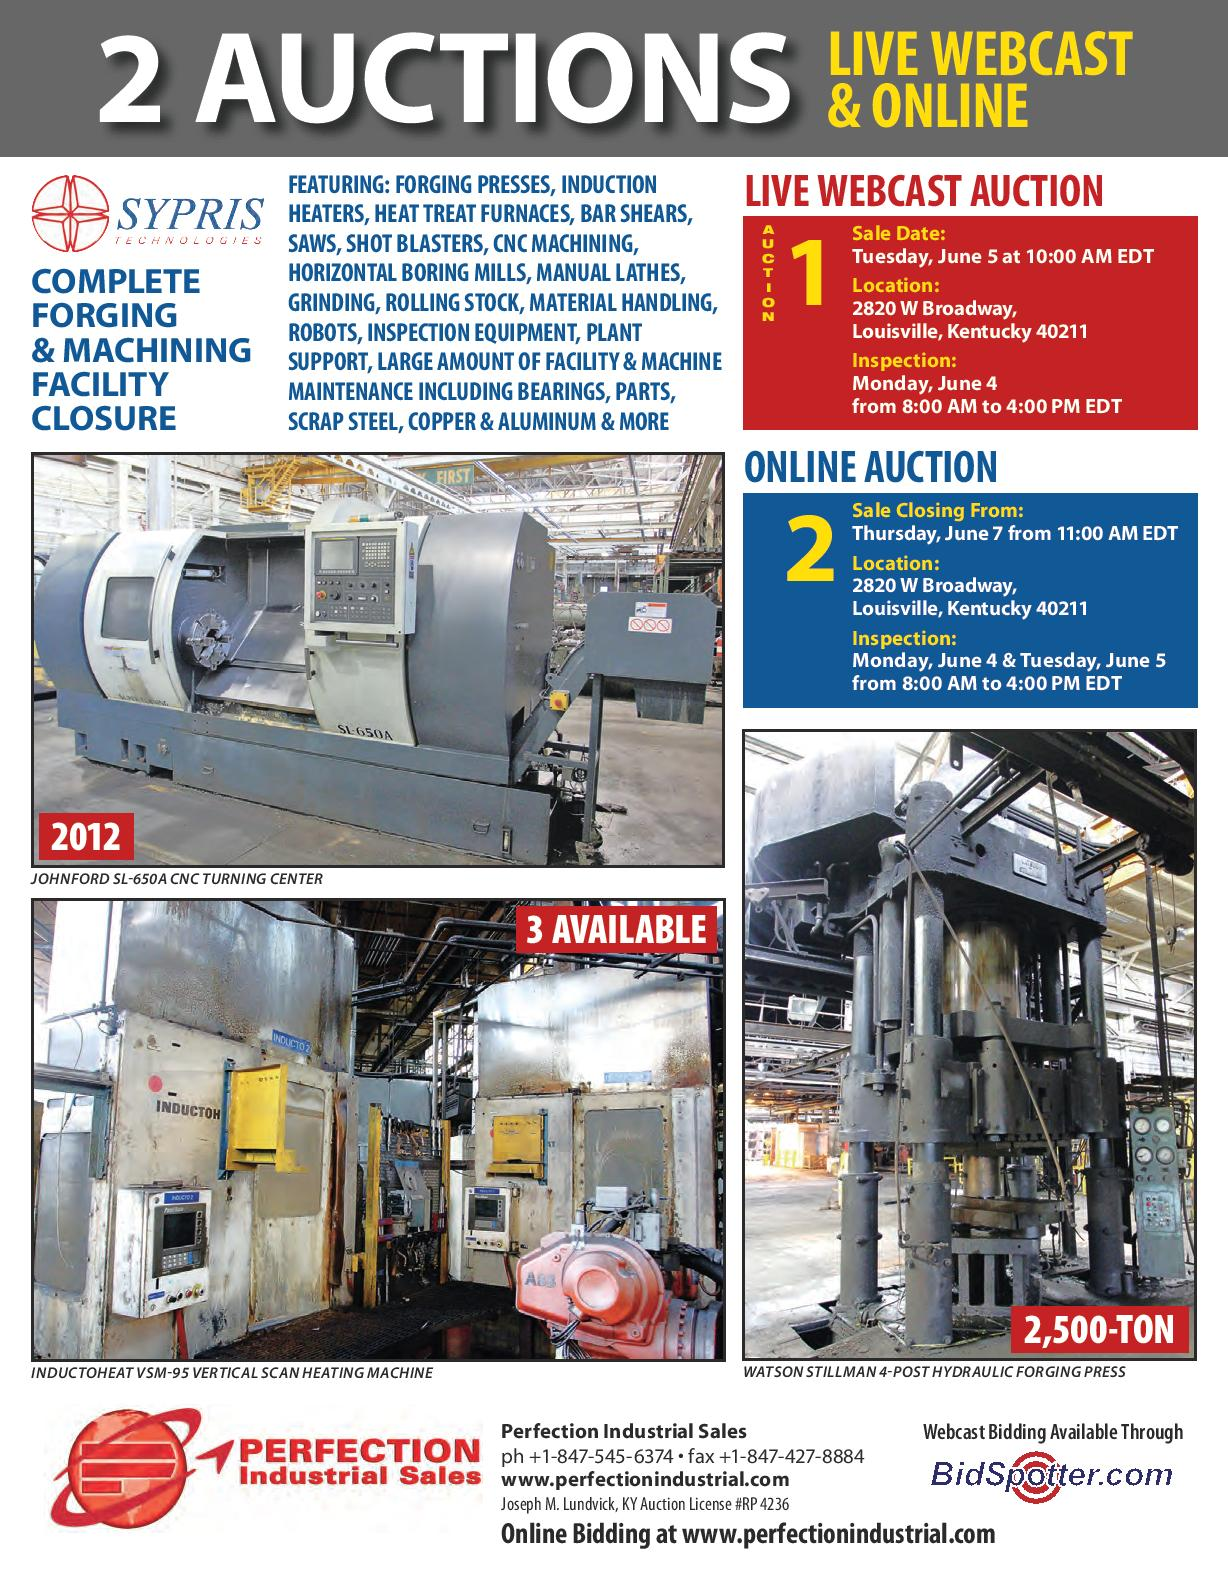 Sypris Technologies - Complete Forging & Machining Facility Closure